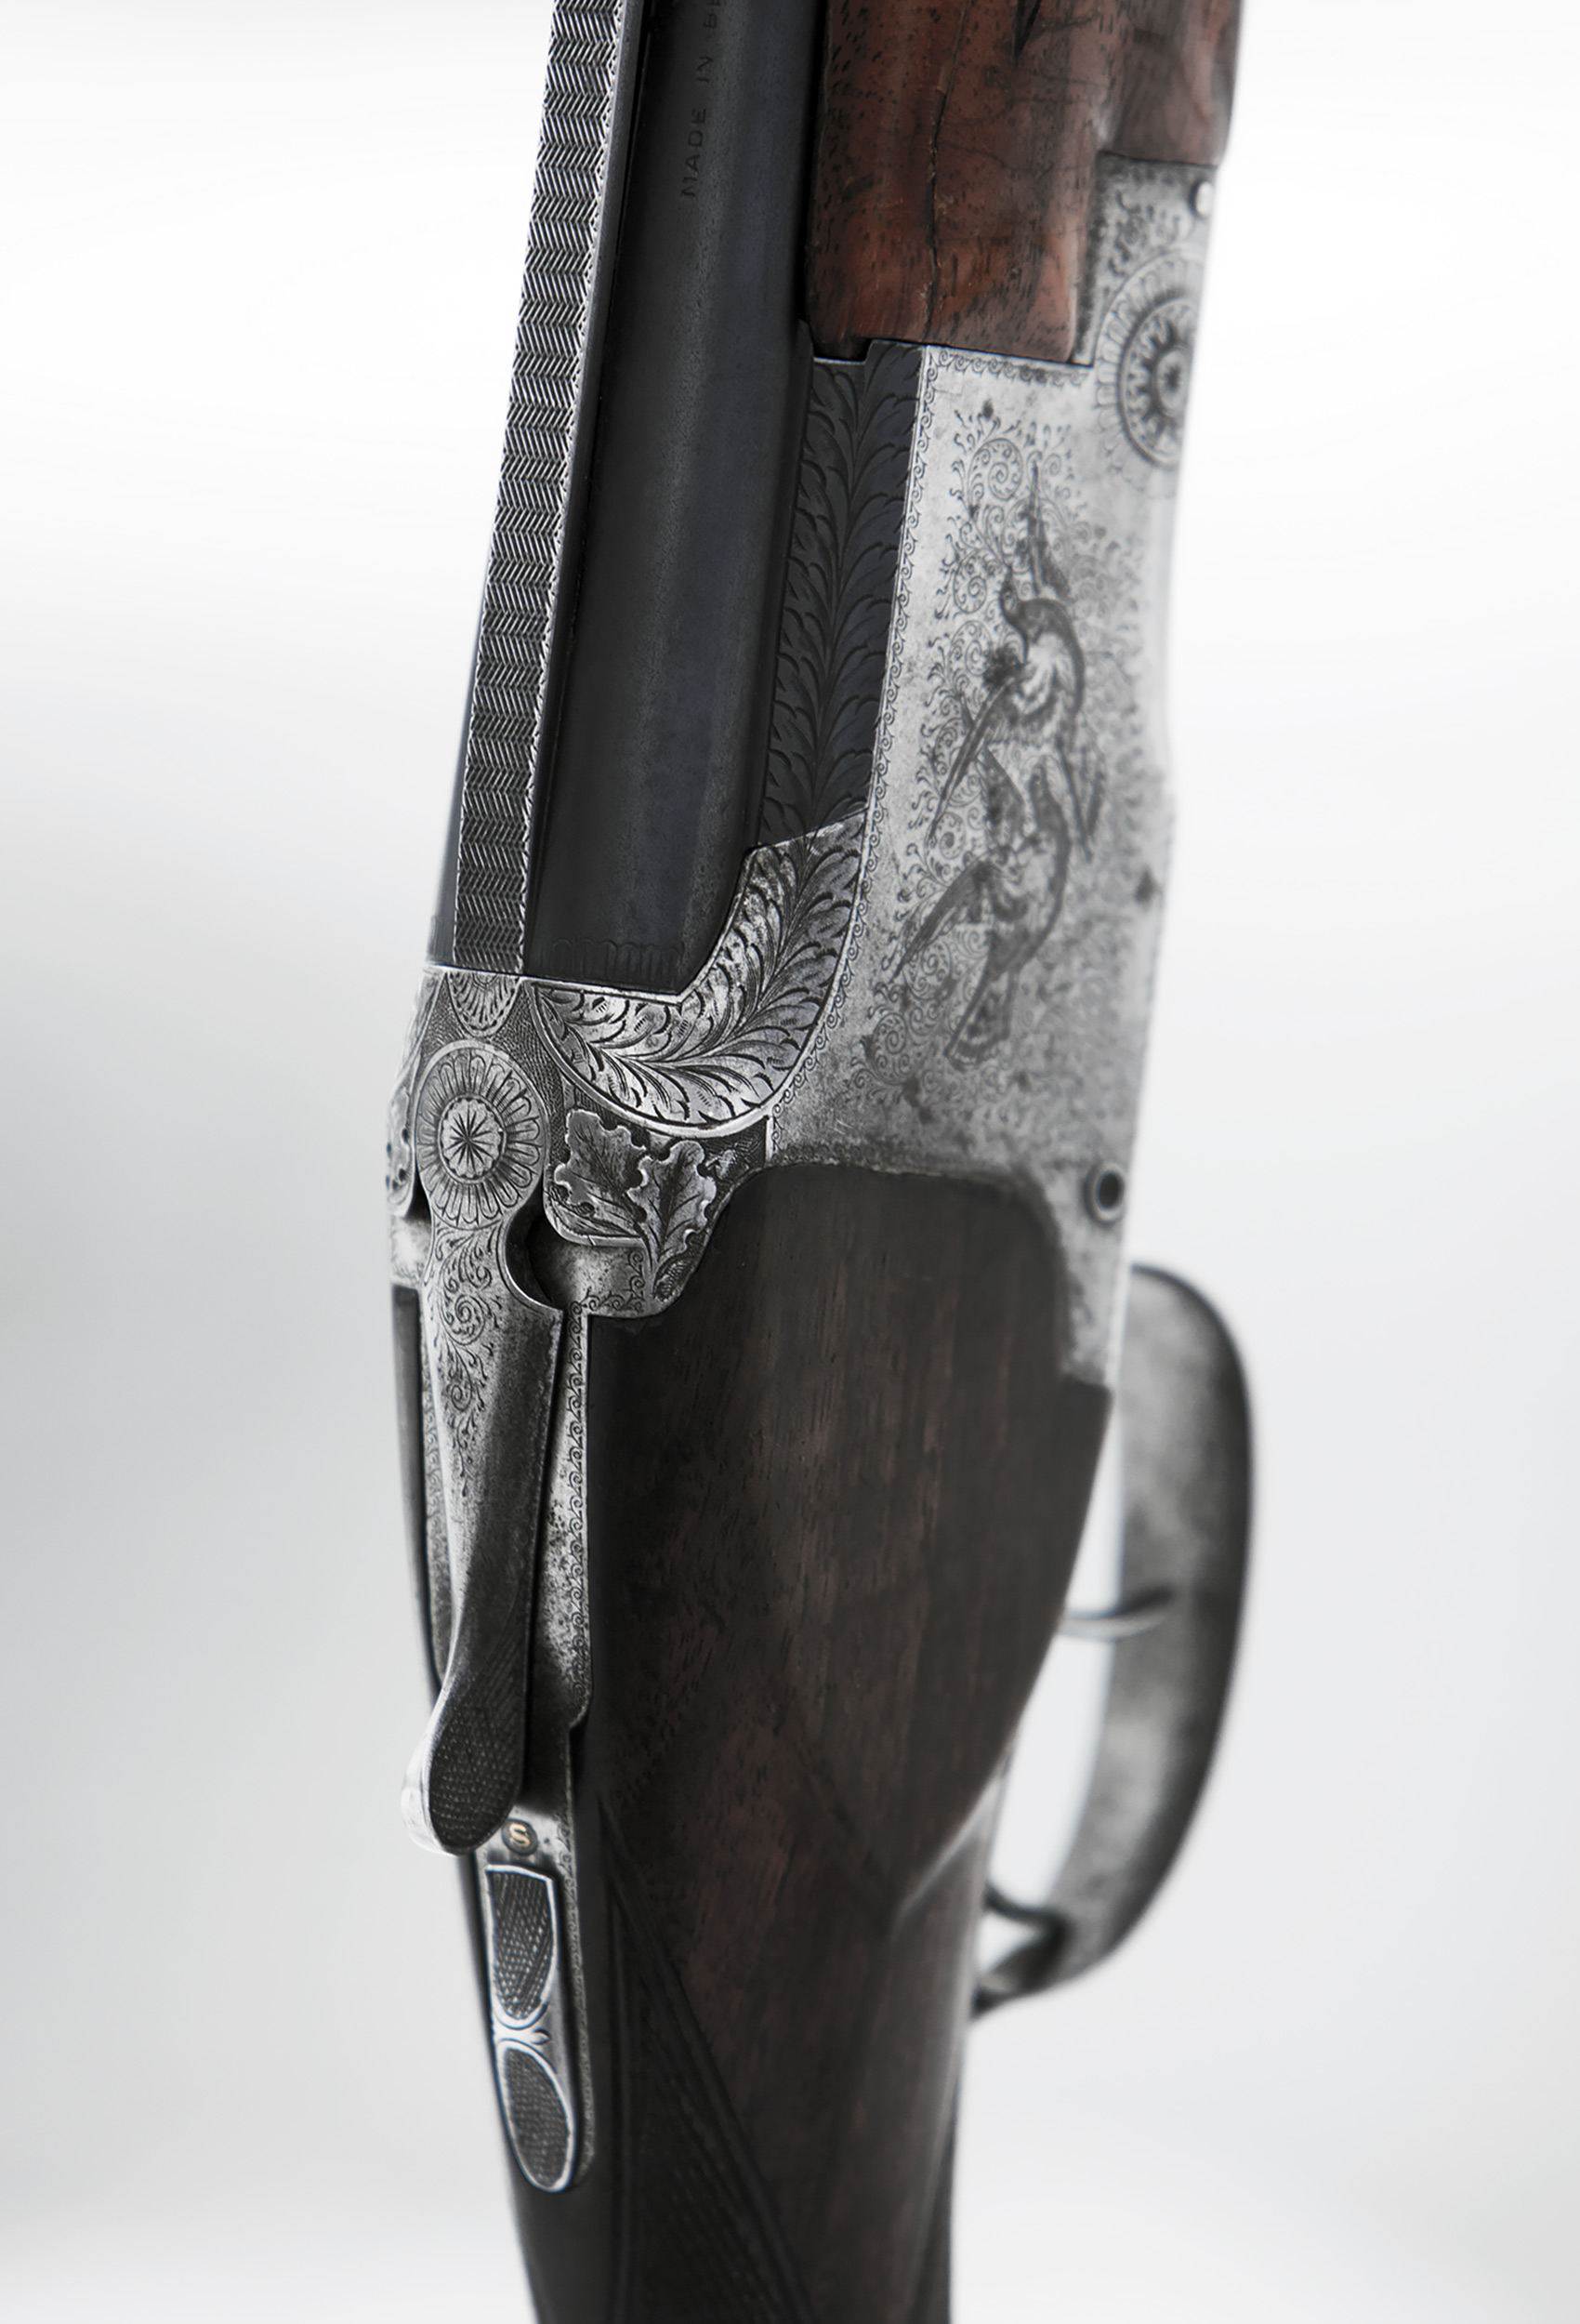 Detail of a Browning Superpose shotgun with double triggers